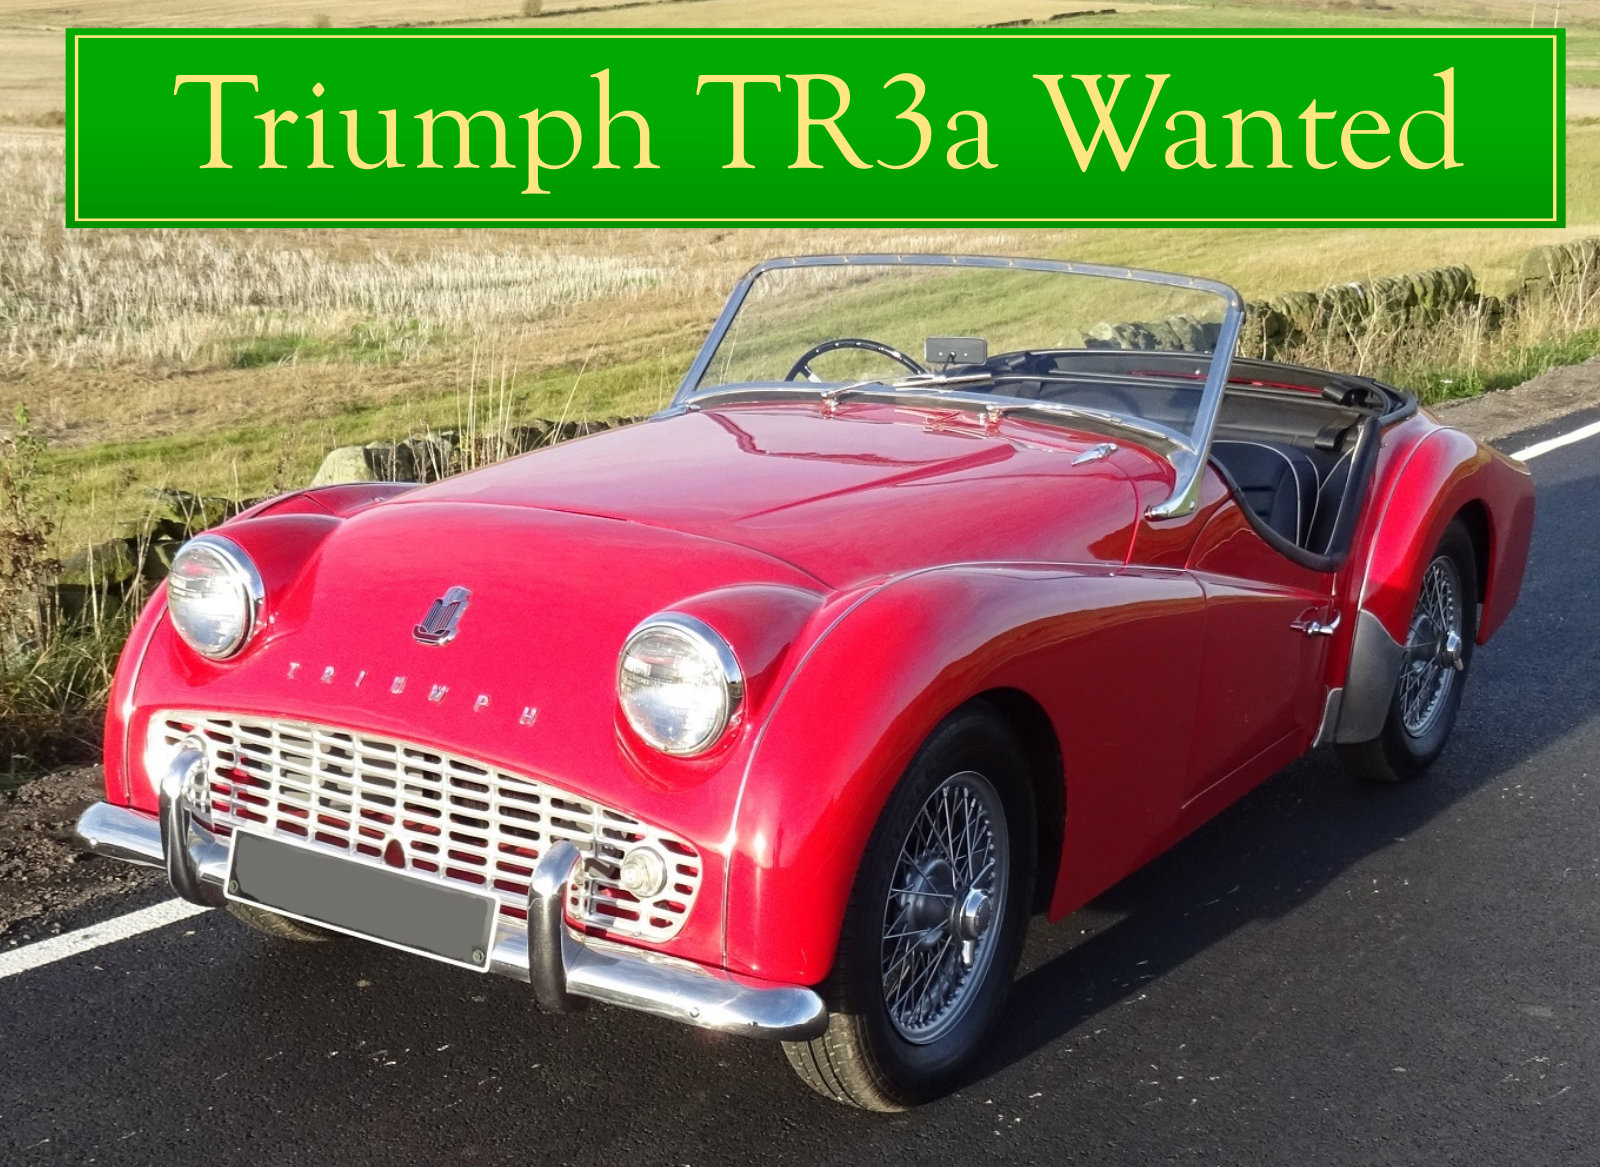 1956 TRIUMPH TR3 WANTED, CLASSIC CARS WANTED, QUICK PAYMENT Wanted (picture 2 of 6)